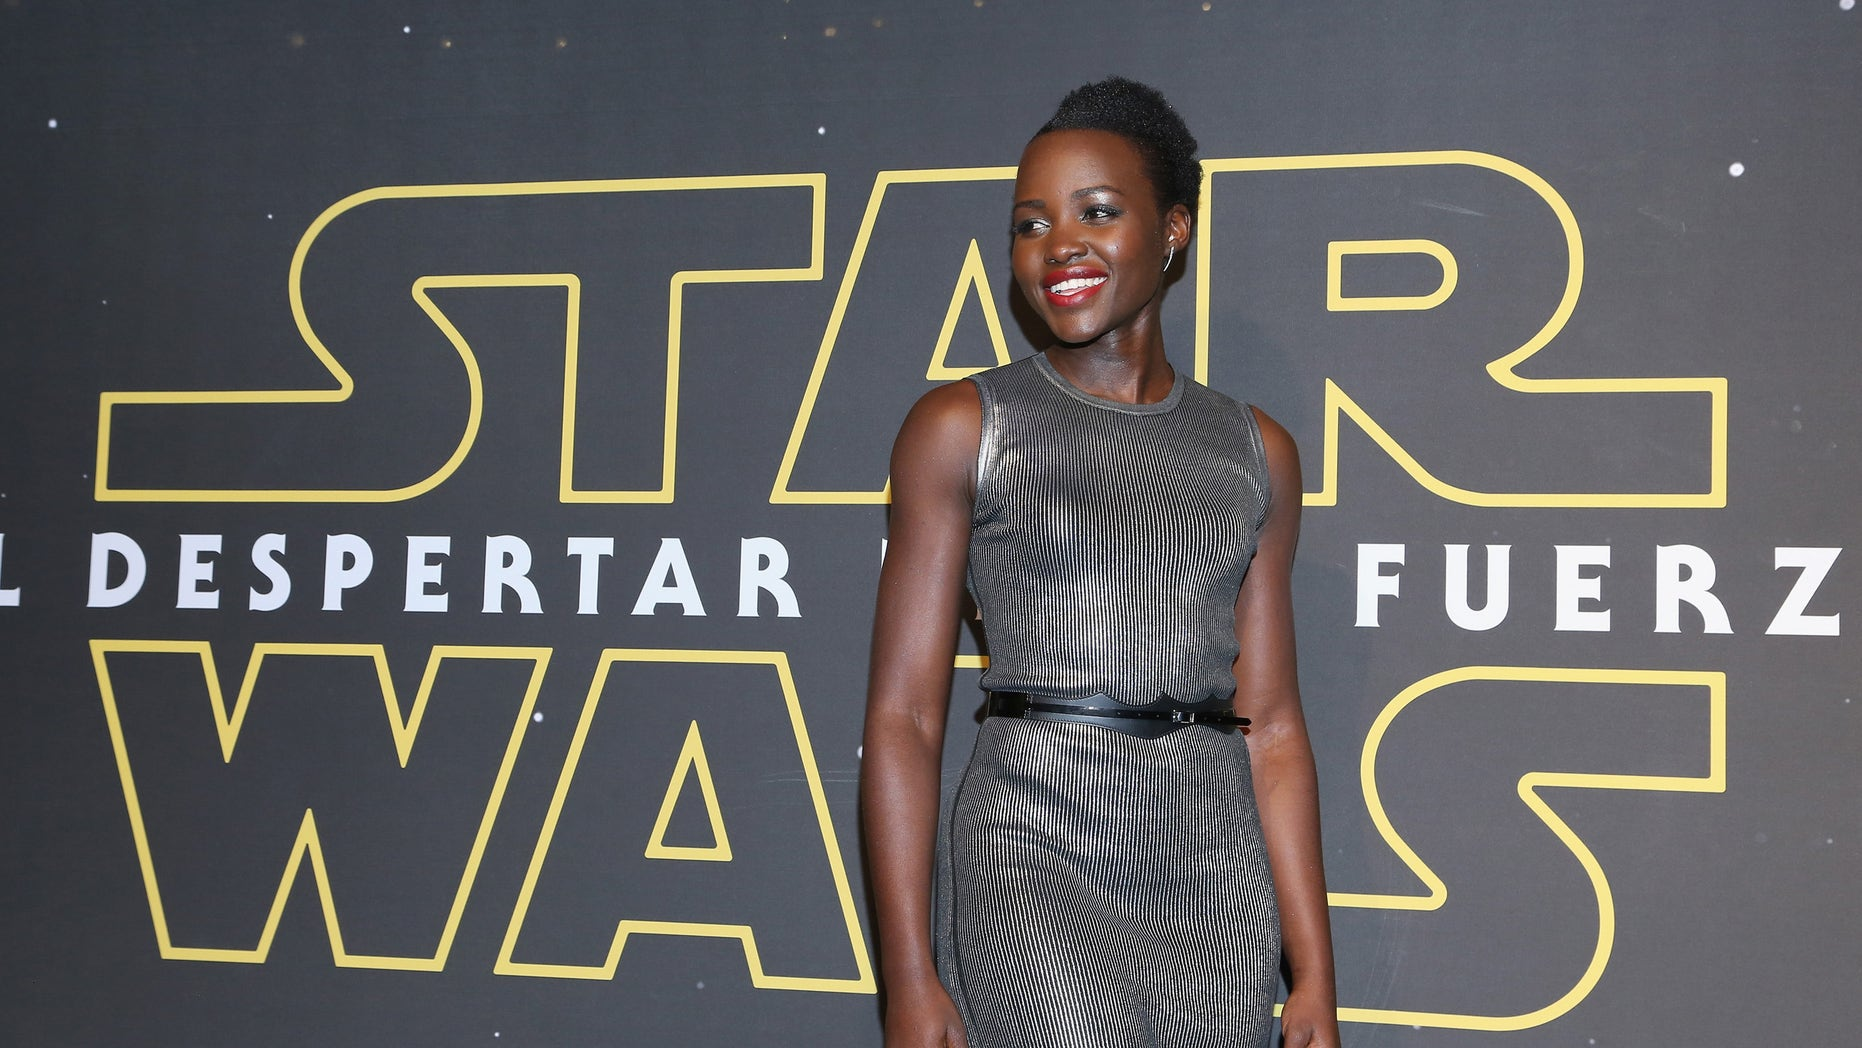 """MEXICO CITY, MEXICO - DECEMBER 08:  Actress Lupita Nyong'o attends the """"Star Wars: The Force Awakens"""" Mexico City premiere fan event at Cinemex Antara Polanco on December 8, 2015 in Mexico City, Mexico.  (Photo by Victor Chavez/Getty Images for Walt Disney Studios')"""